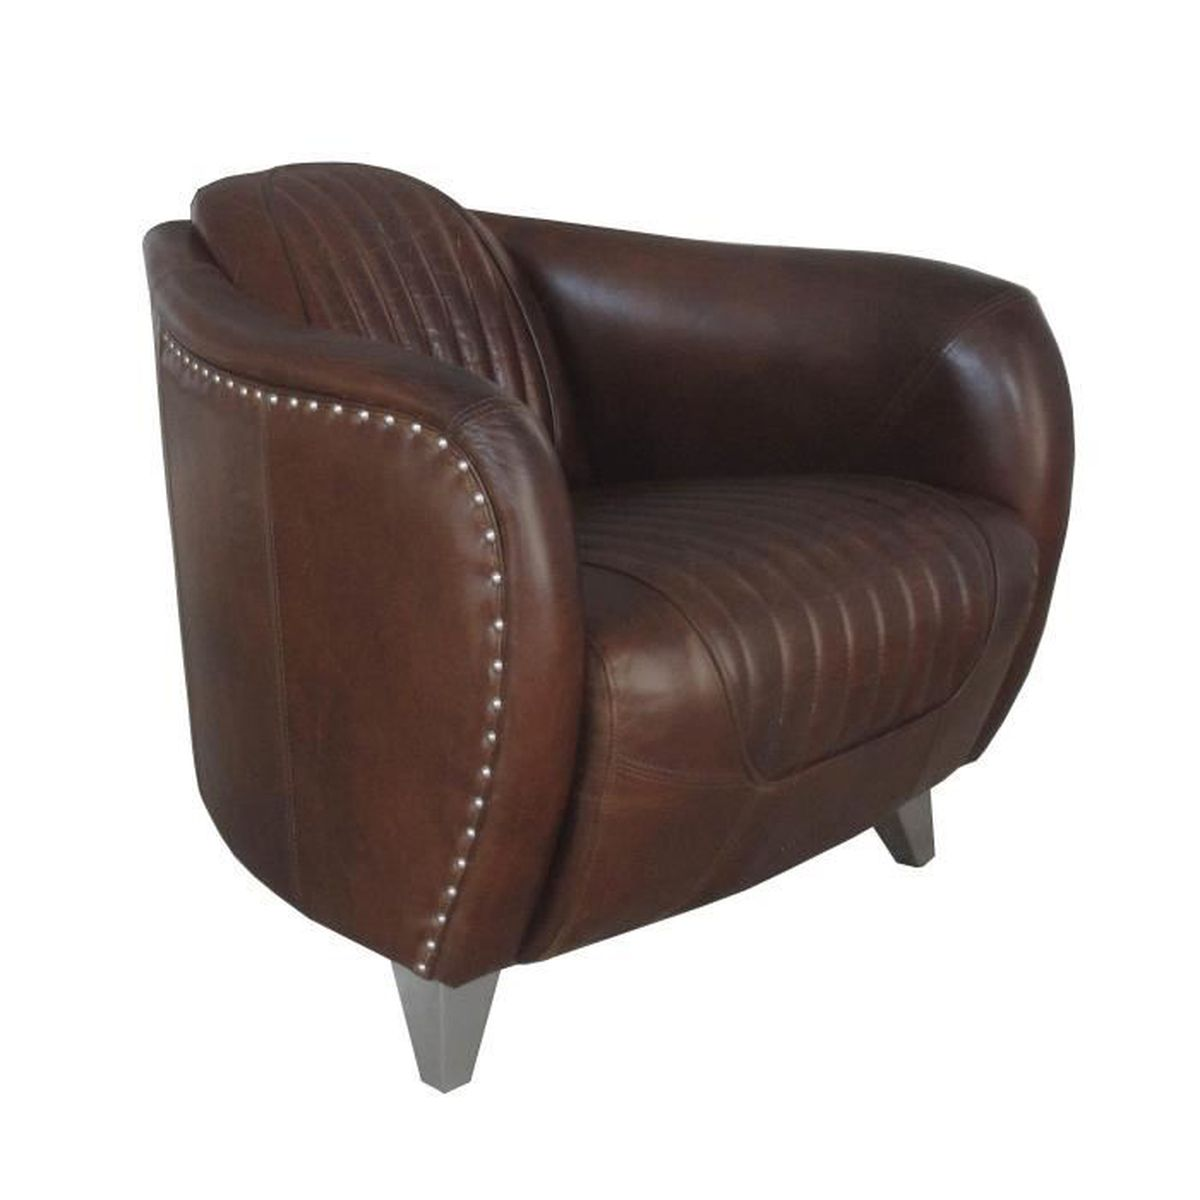 fauteuil club aviateur daytona cuir marron vintage achat vente fauteuil marron cdiscount. Black Bedroom Furniture Sets. Home Design Ideas